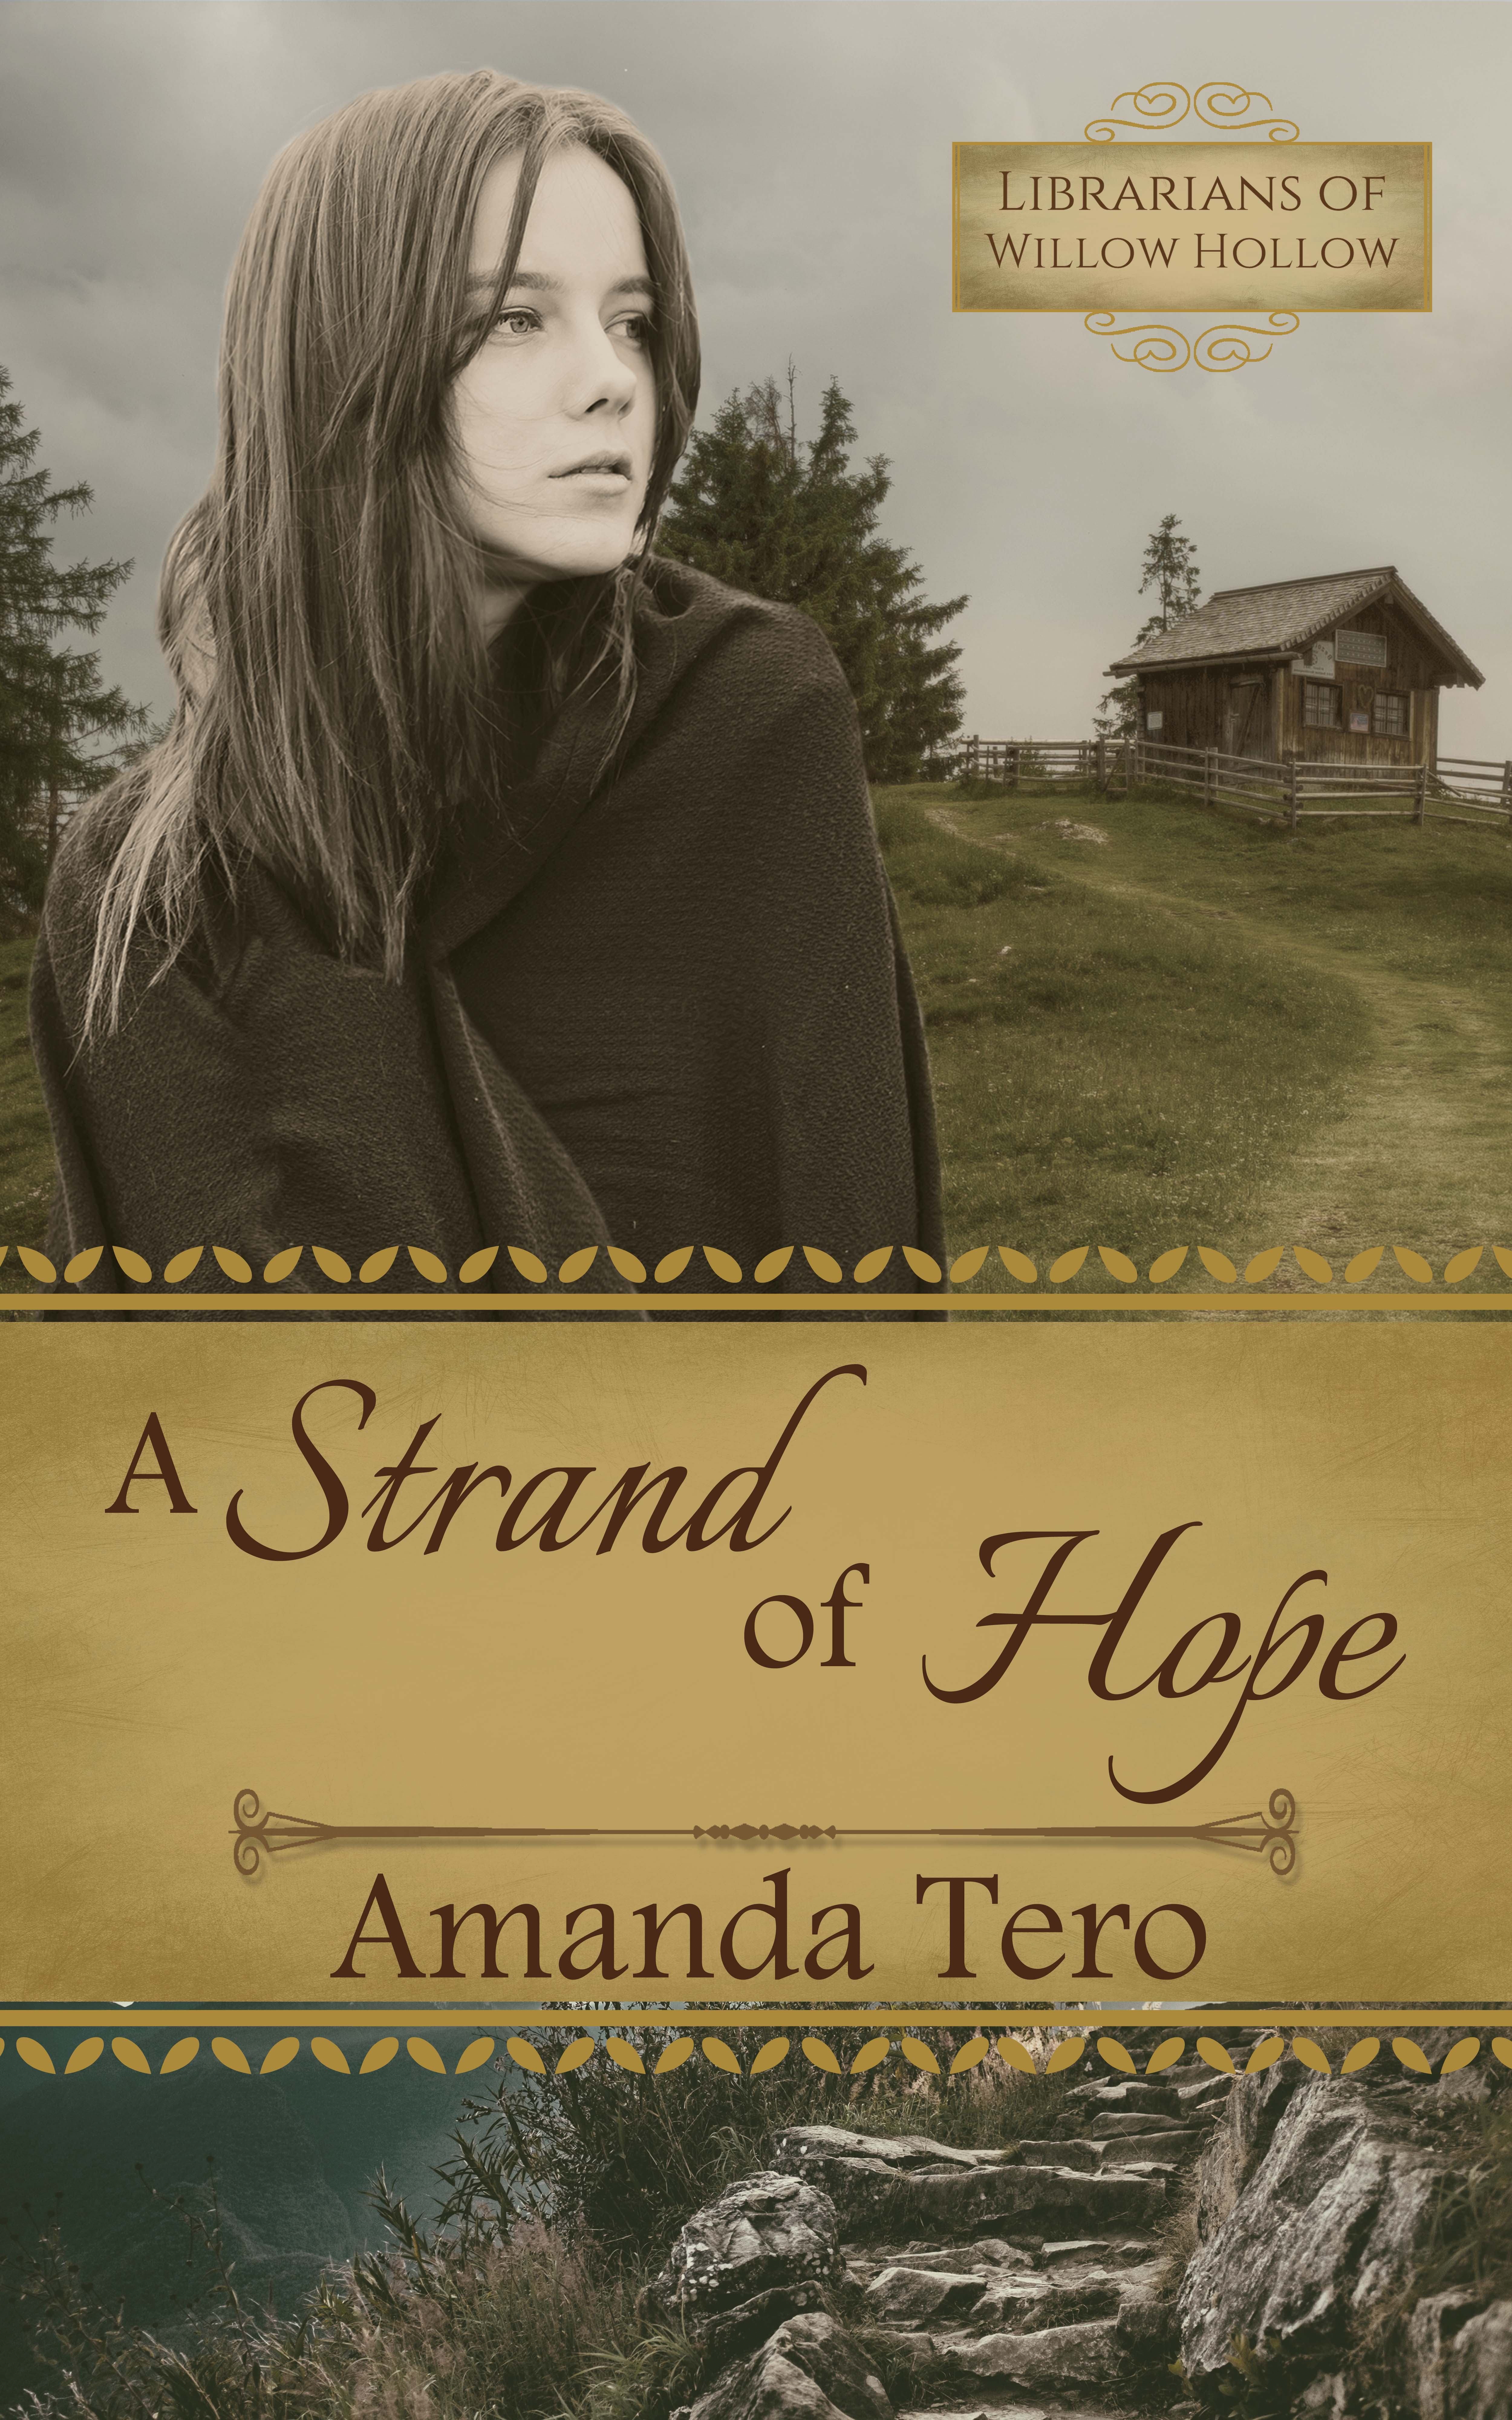 A Strand of Hope (Librarians of Willow Hollow)